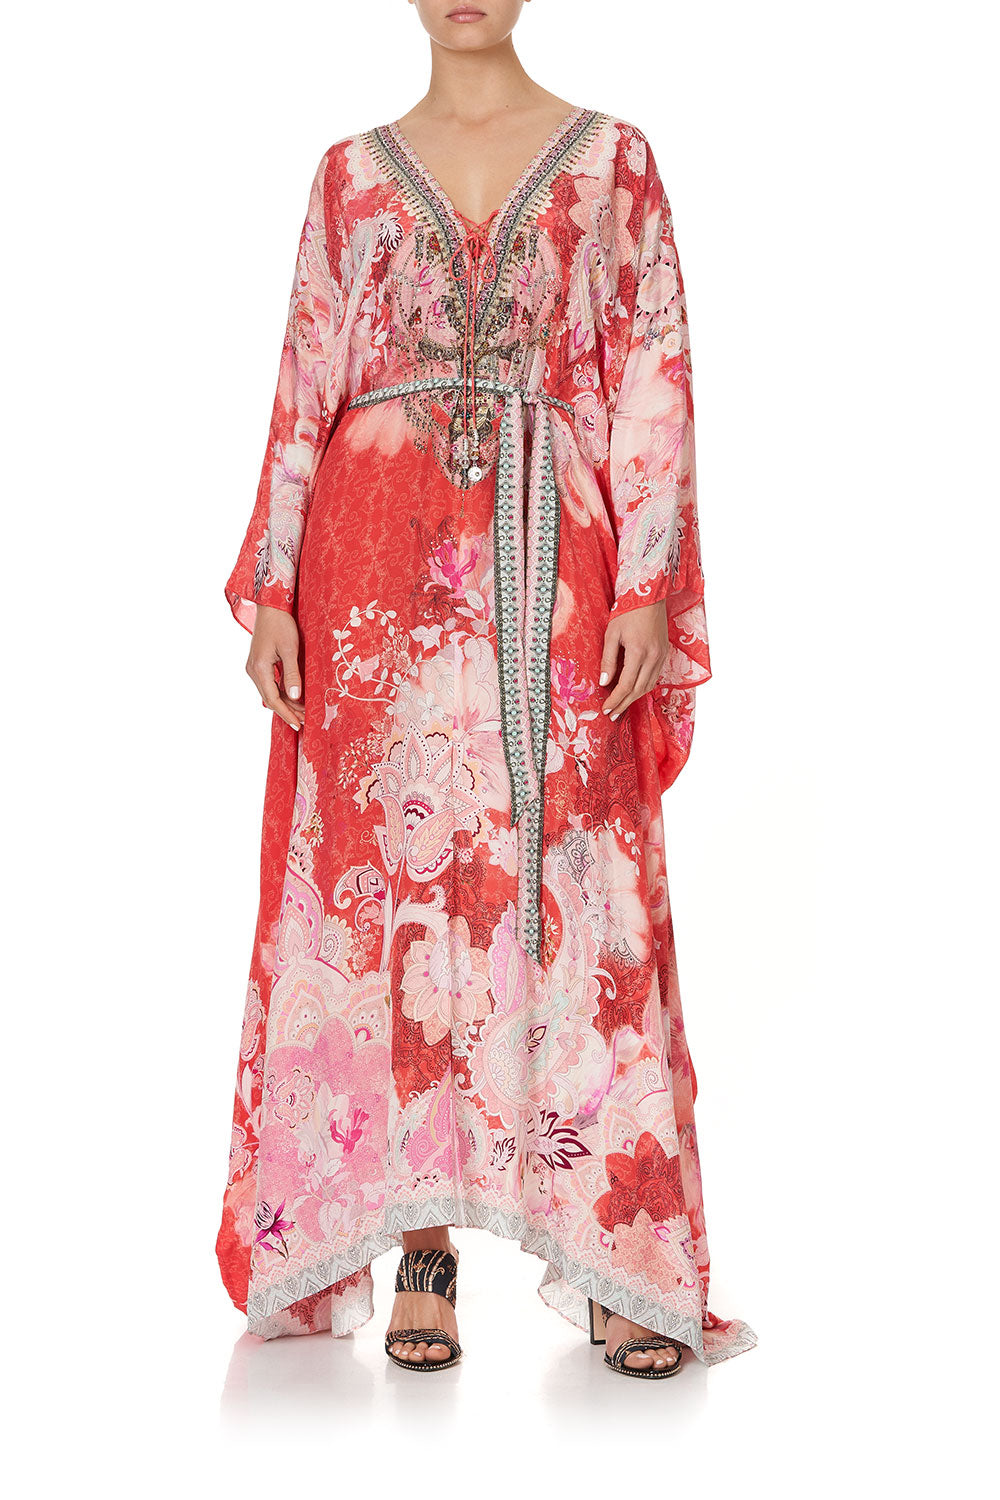 SPLIT HEM LACE UP KAFTAN PALACE MUSE